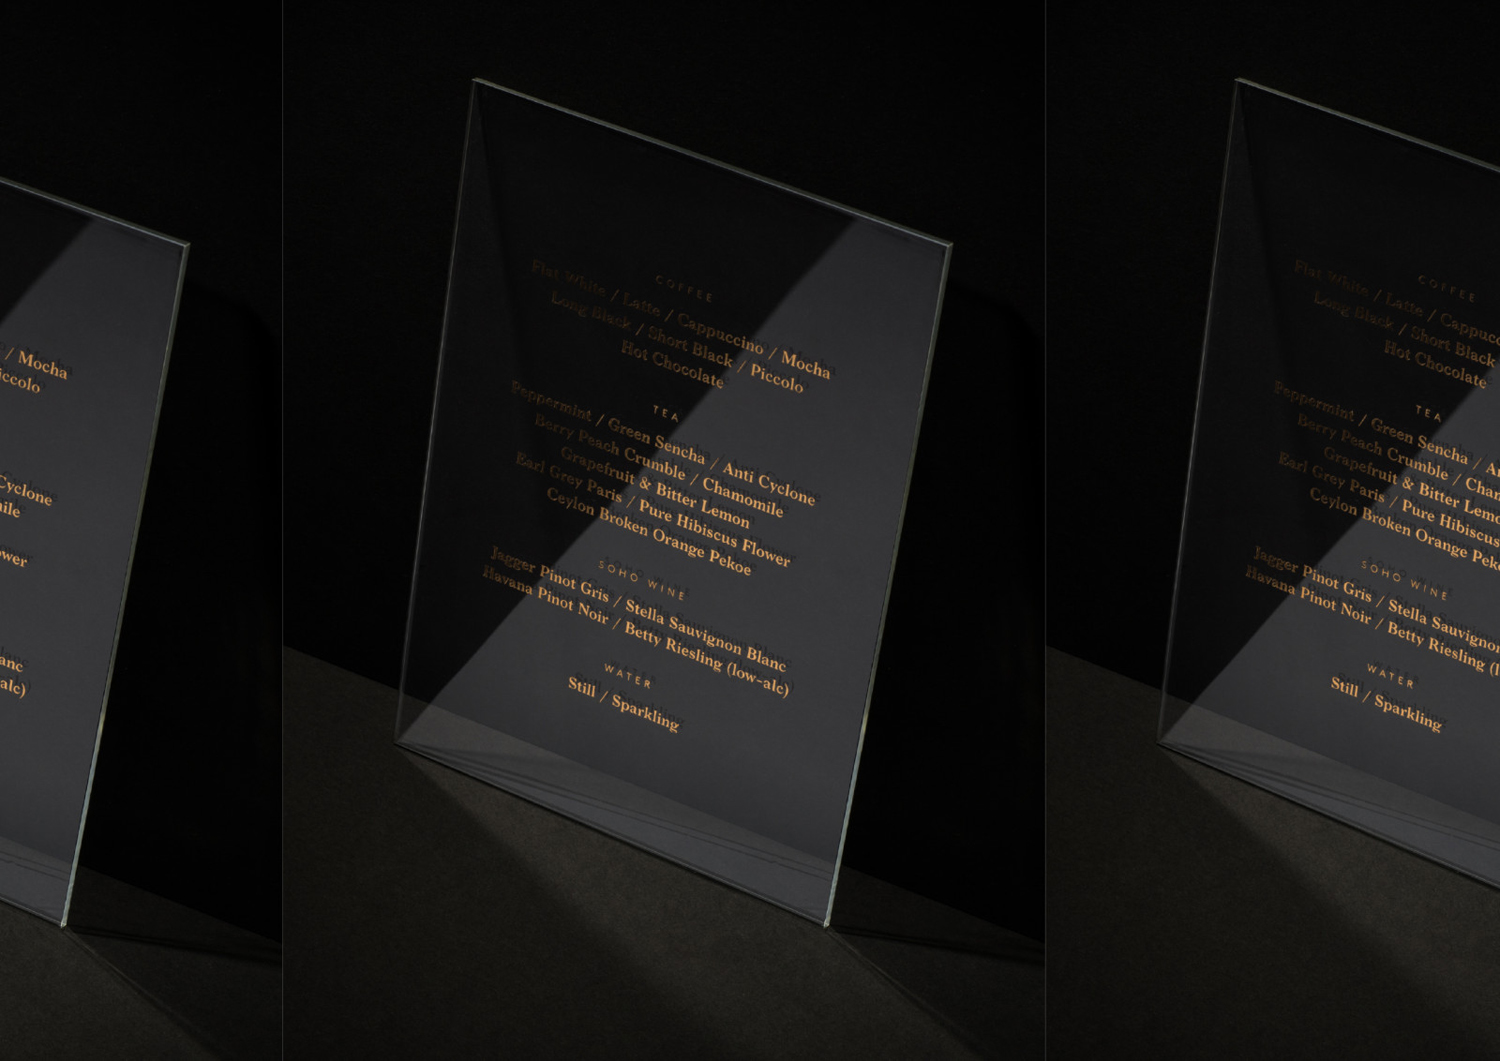 Brand identity and signage with bronze foil detail for Auckland-based luxe salon M11 designed by Inhouse, New Zealand